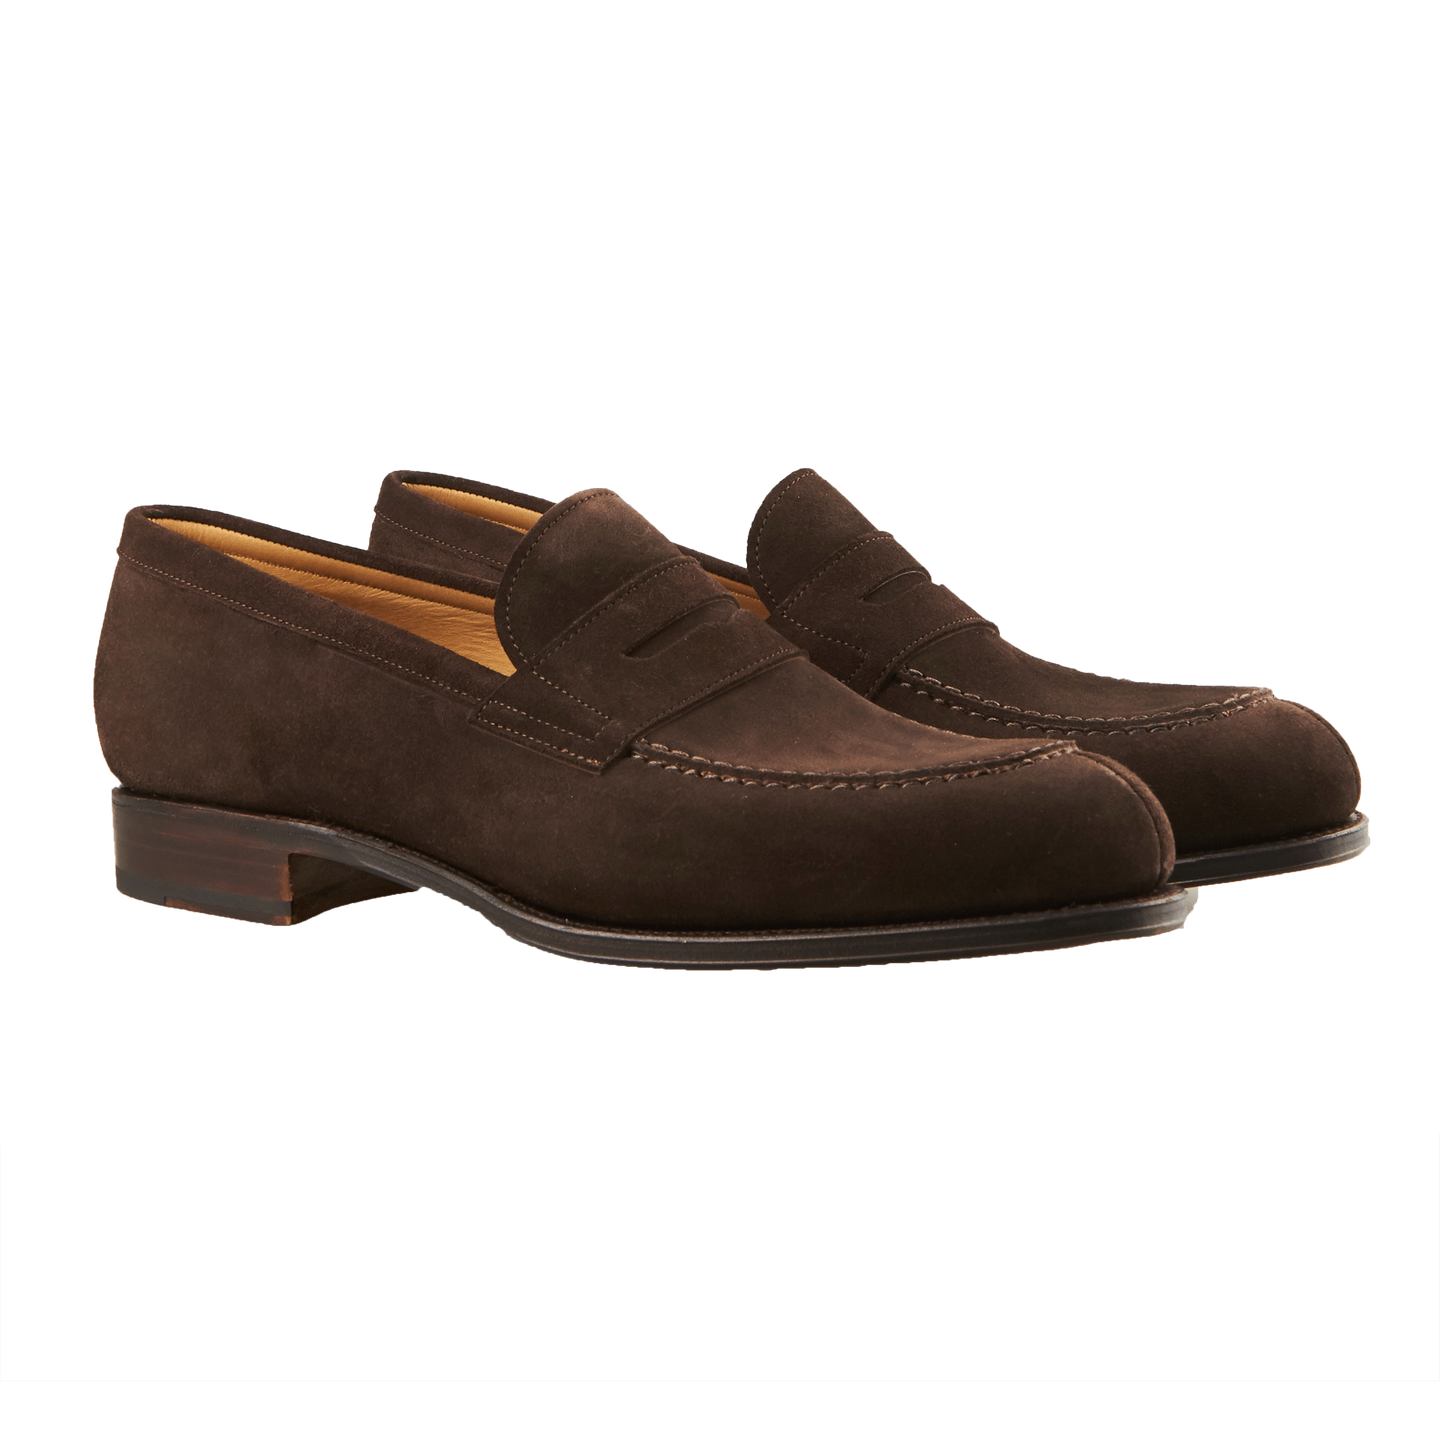 fae5e4236ba6 Carmina - Brown Suede Forest Penny Loafer